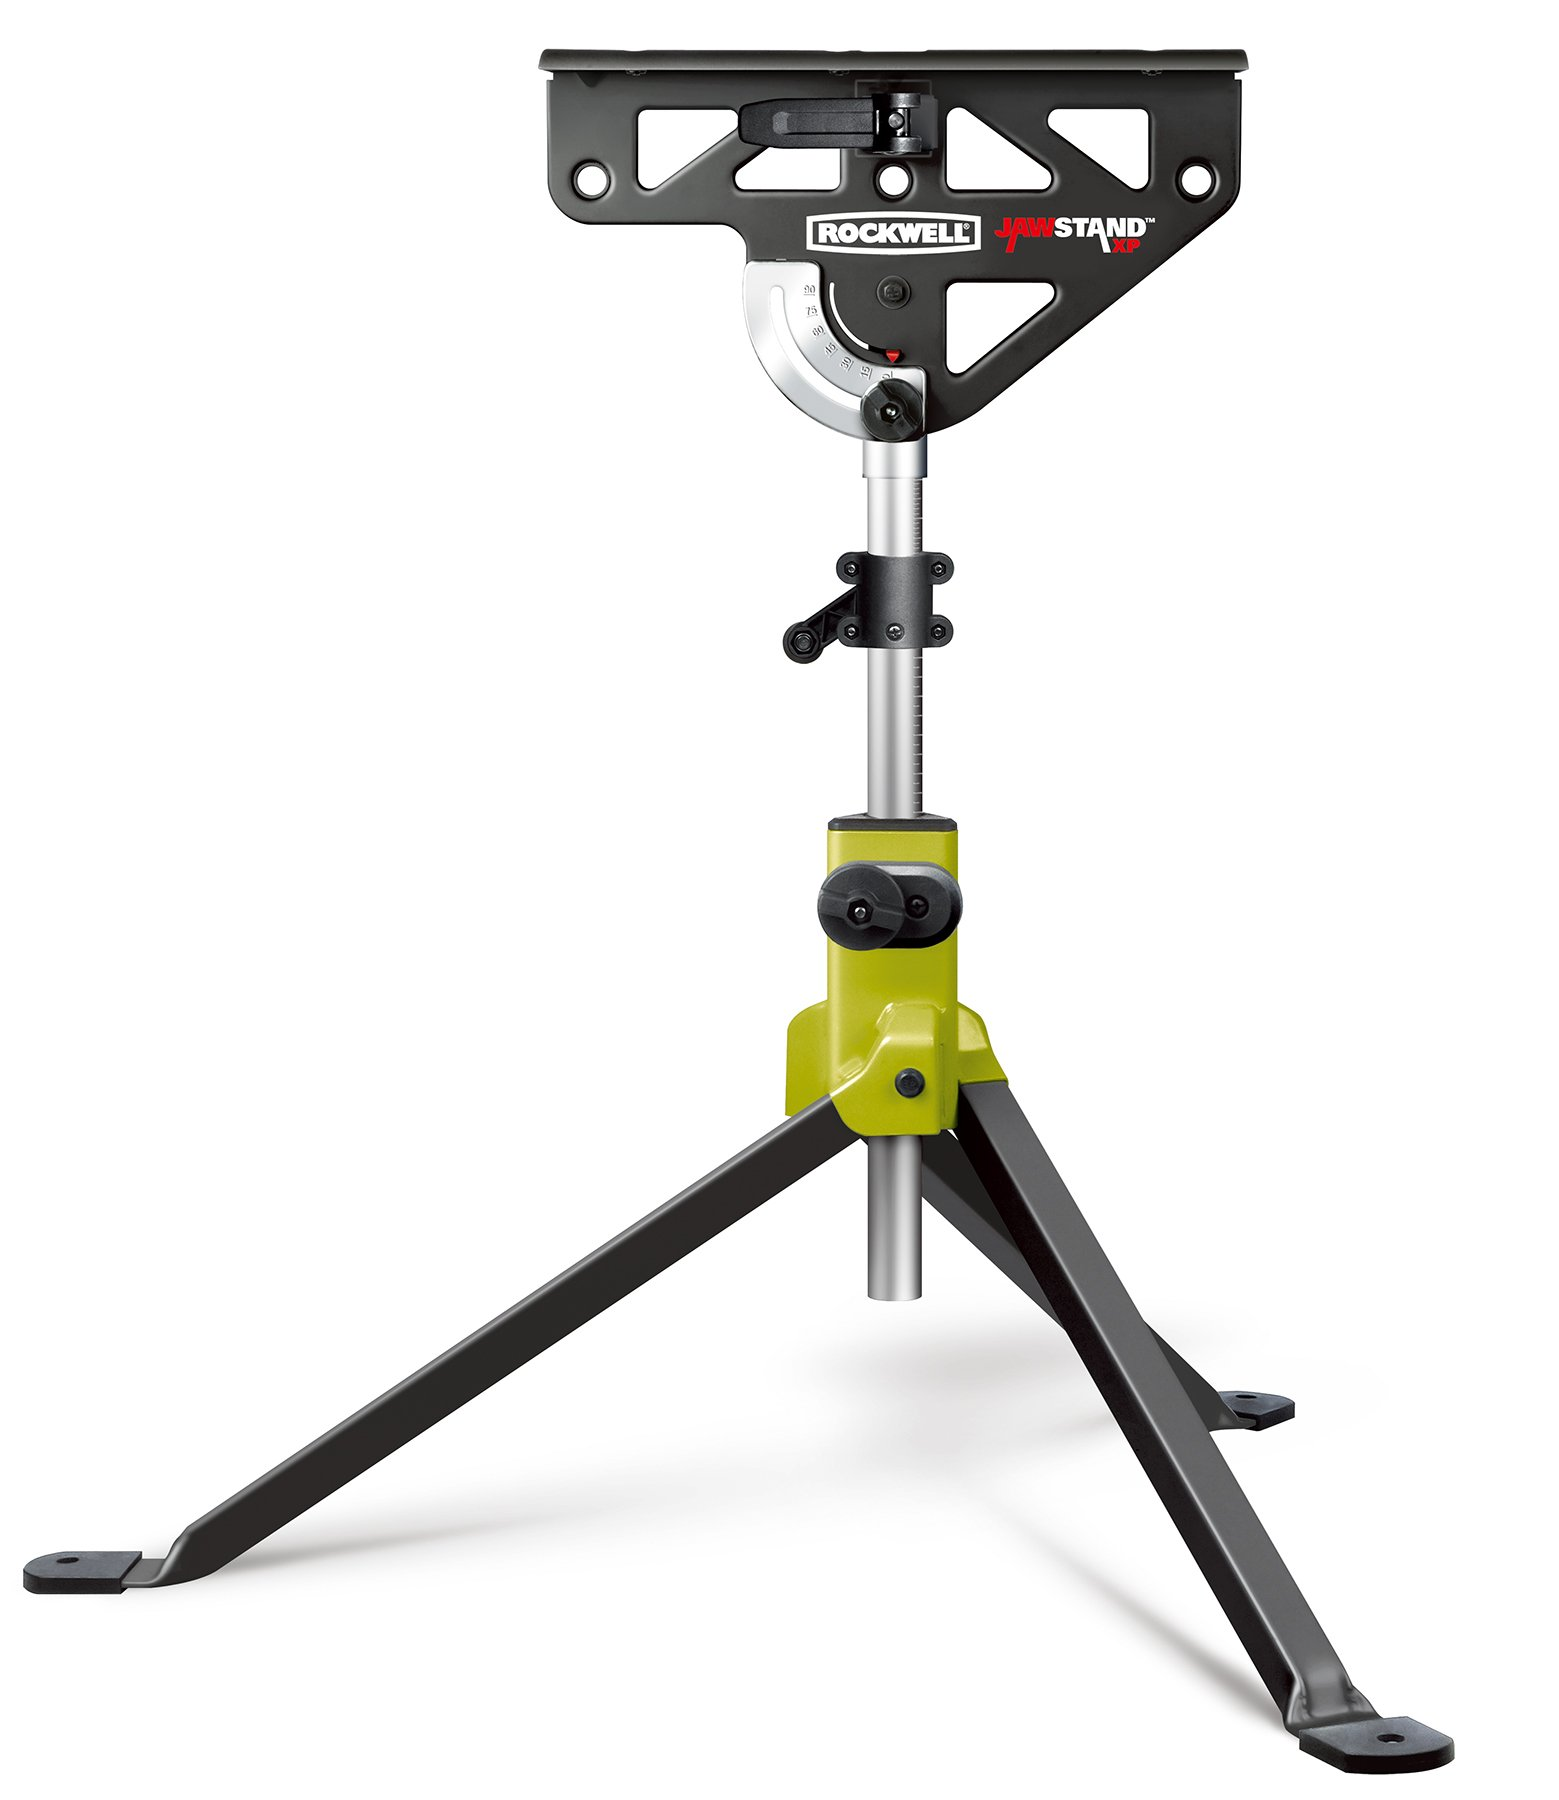 Rockwell RK9034 JawStand XP Work Support Stand by Rockwell